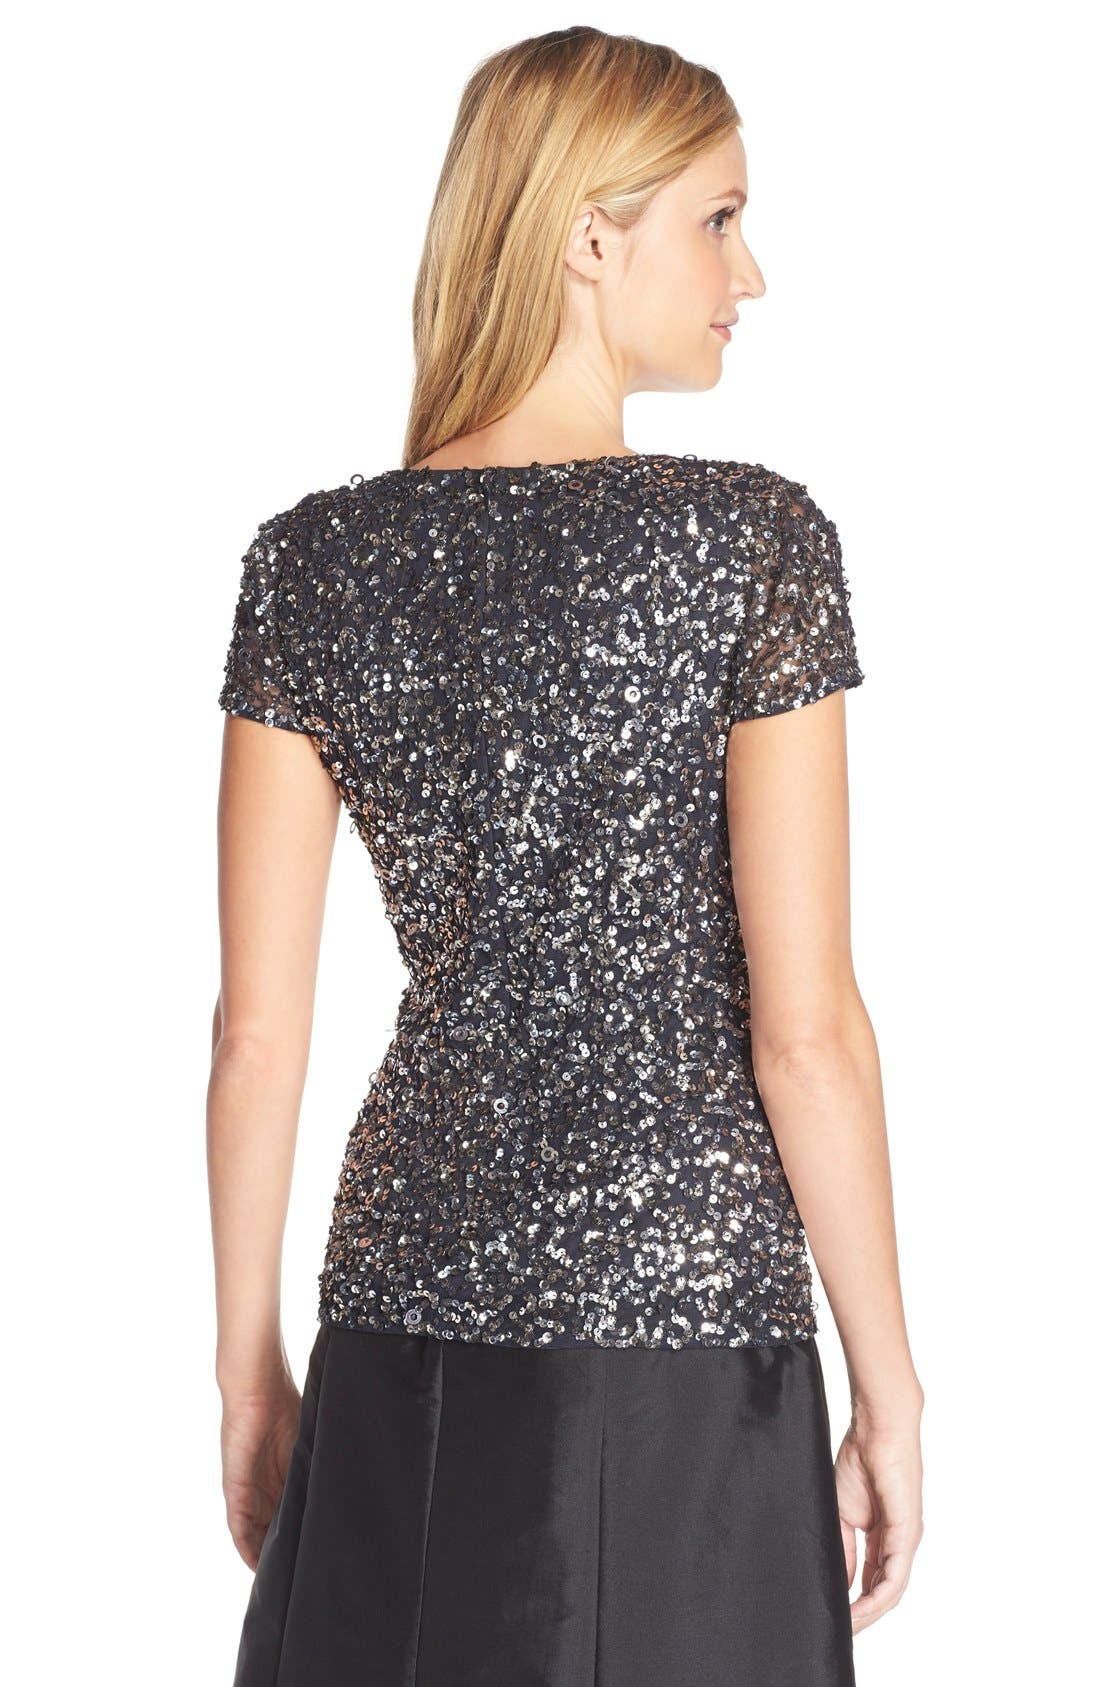 ADRIANNA PAPELL, Sequin Mesh Top, Alternate thumbnail 3, color, 020